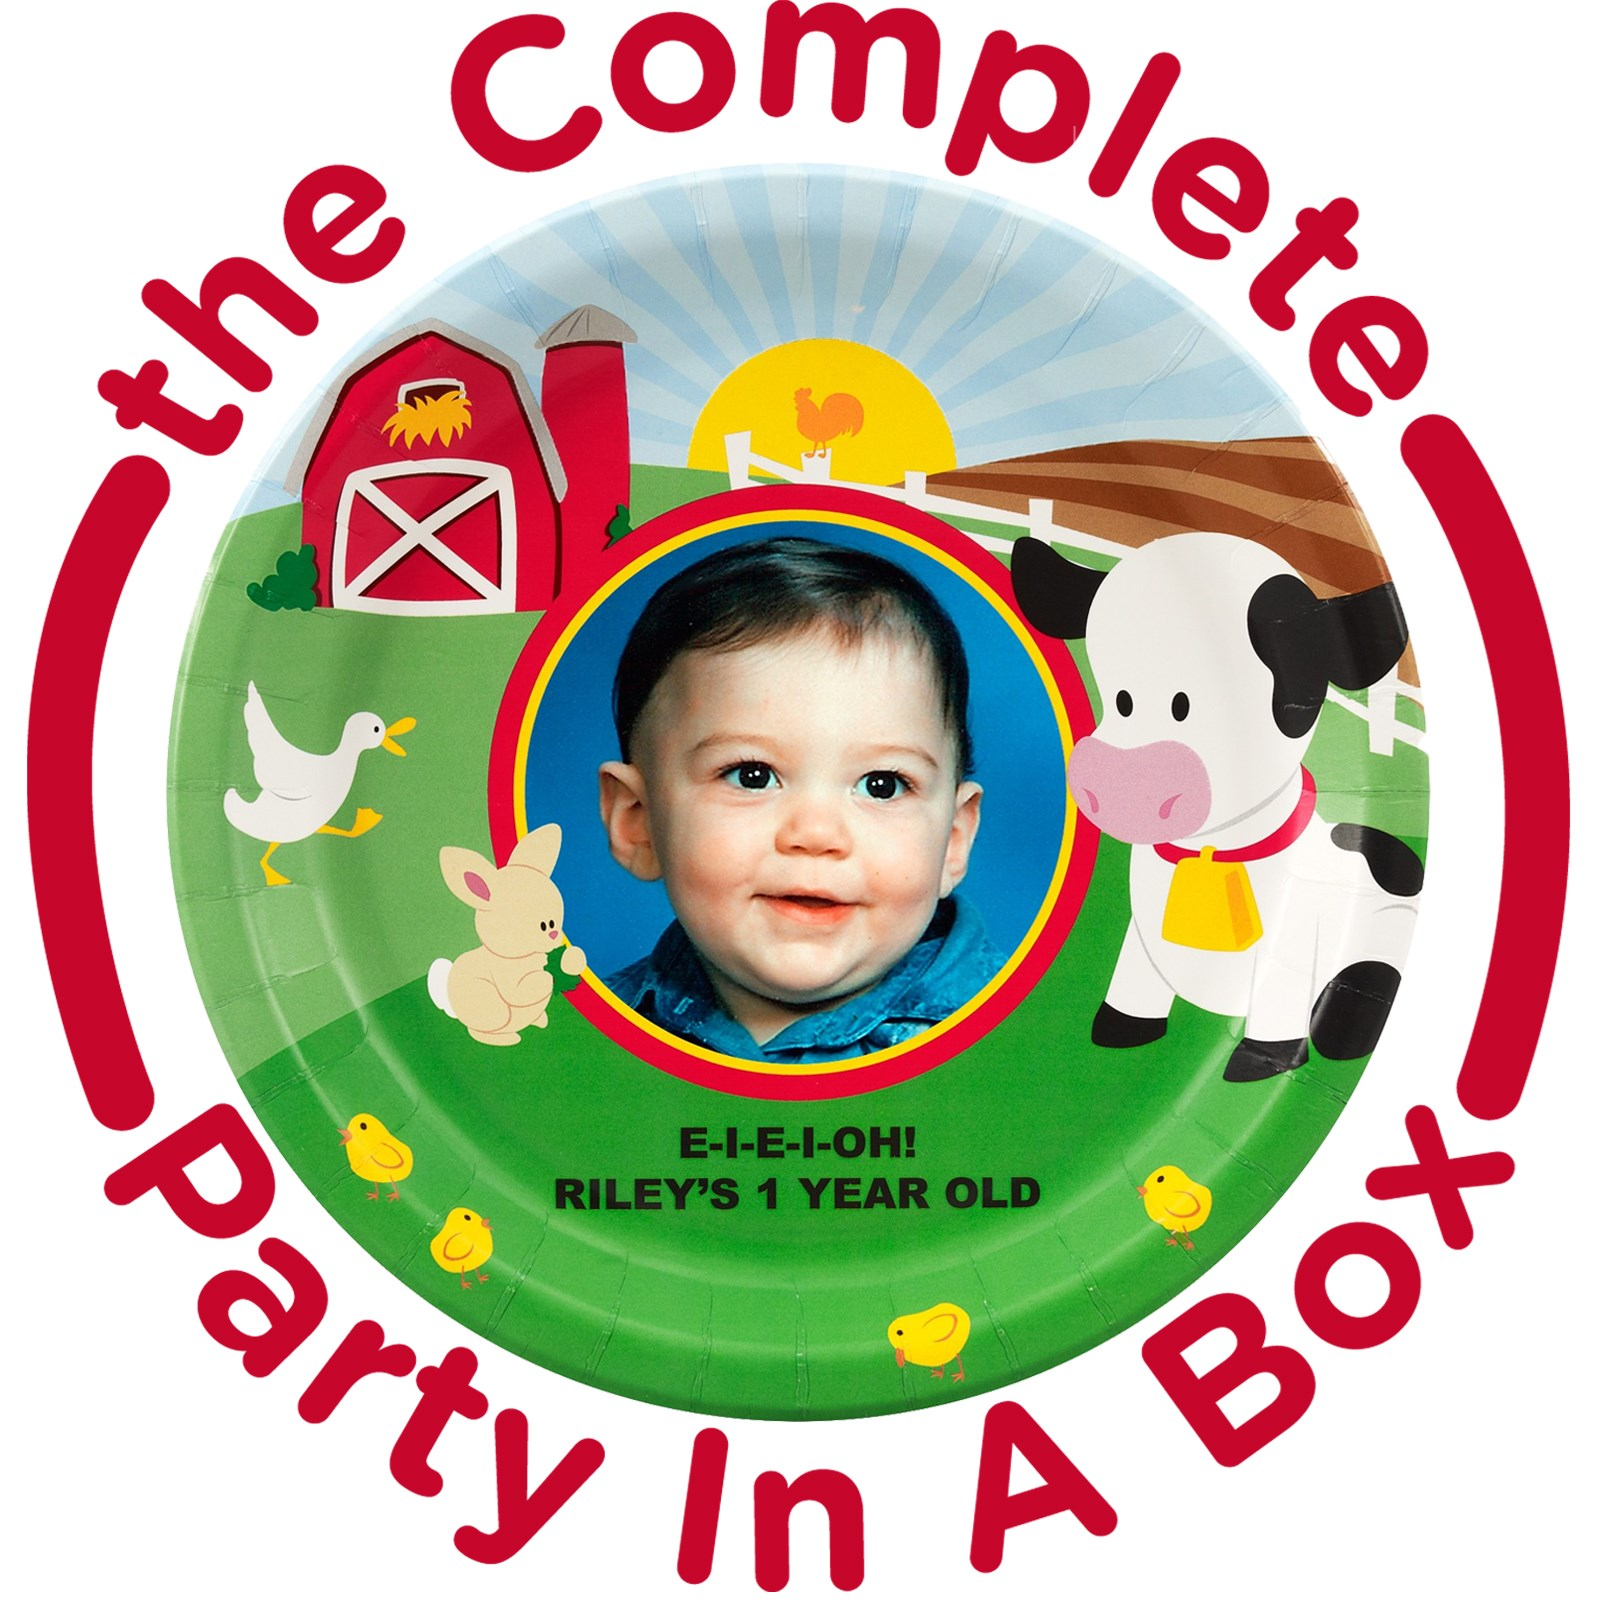 Image of Barnyard Personalized Party in a Box - Deluxe - 16 Guests